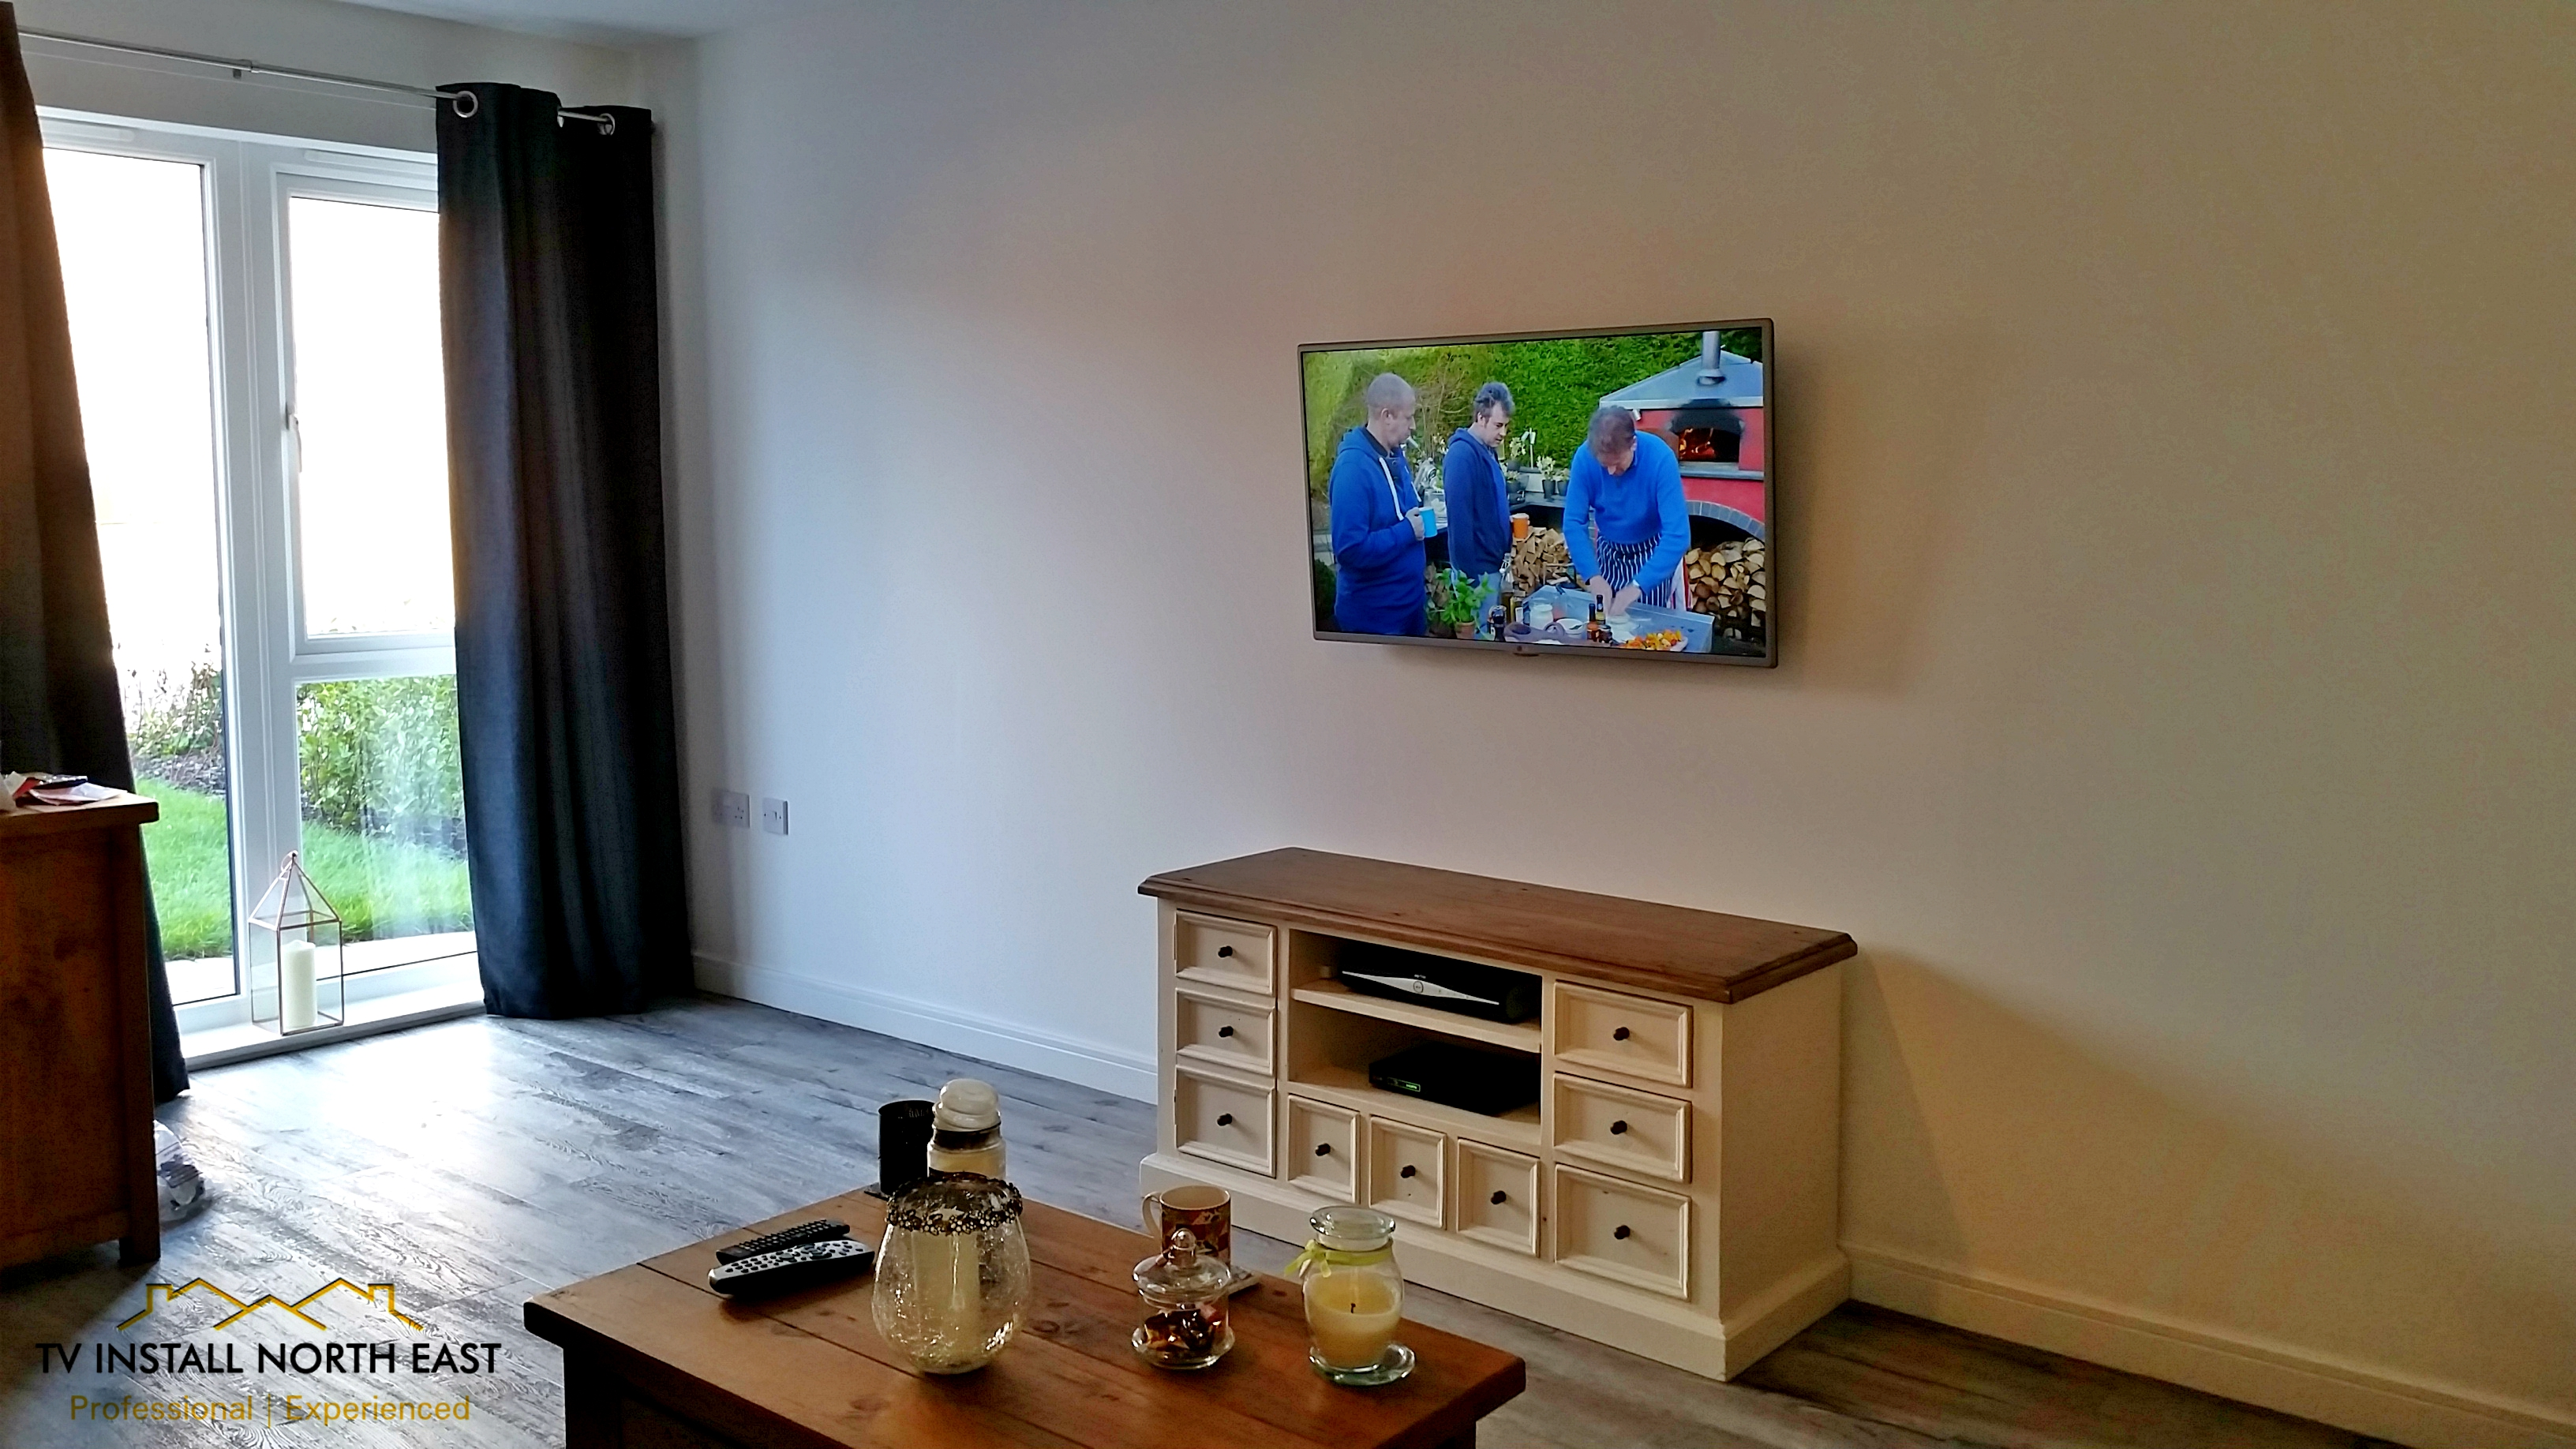 "Panasonic 42"" LED TV above fire"